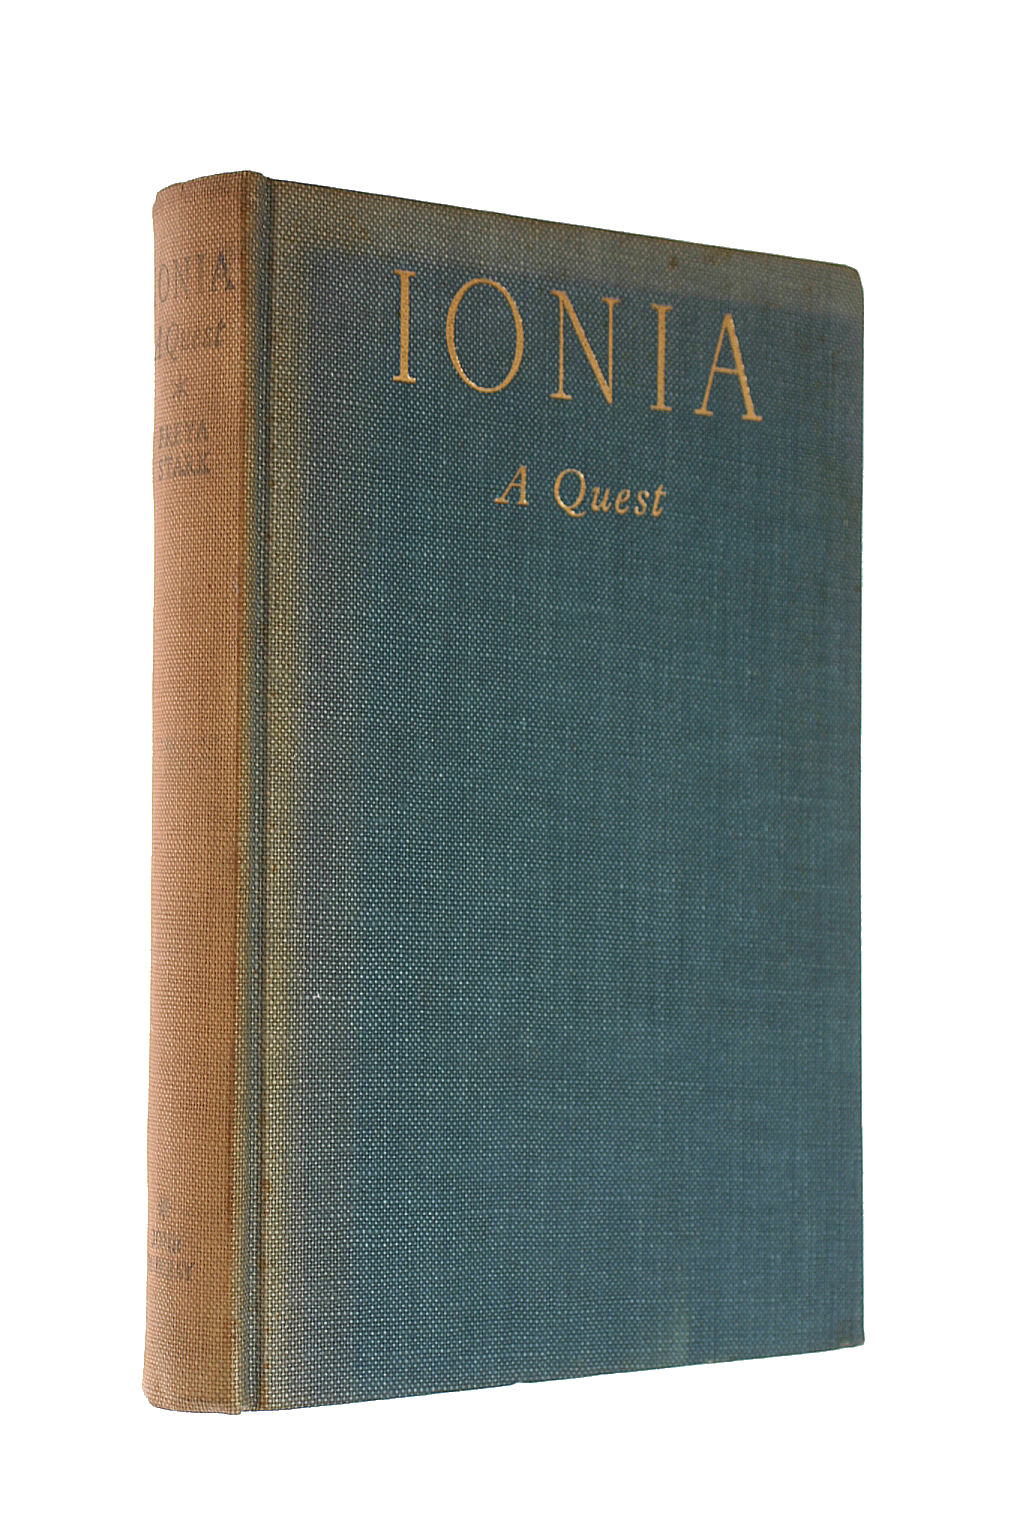 Image for Ionia: A Quest